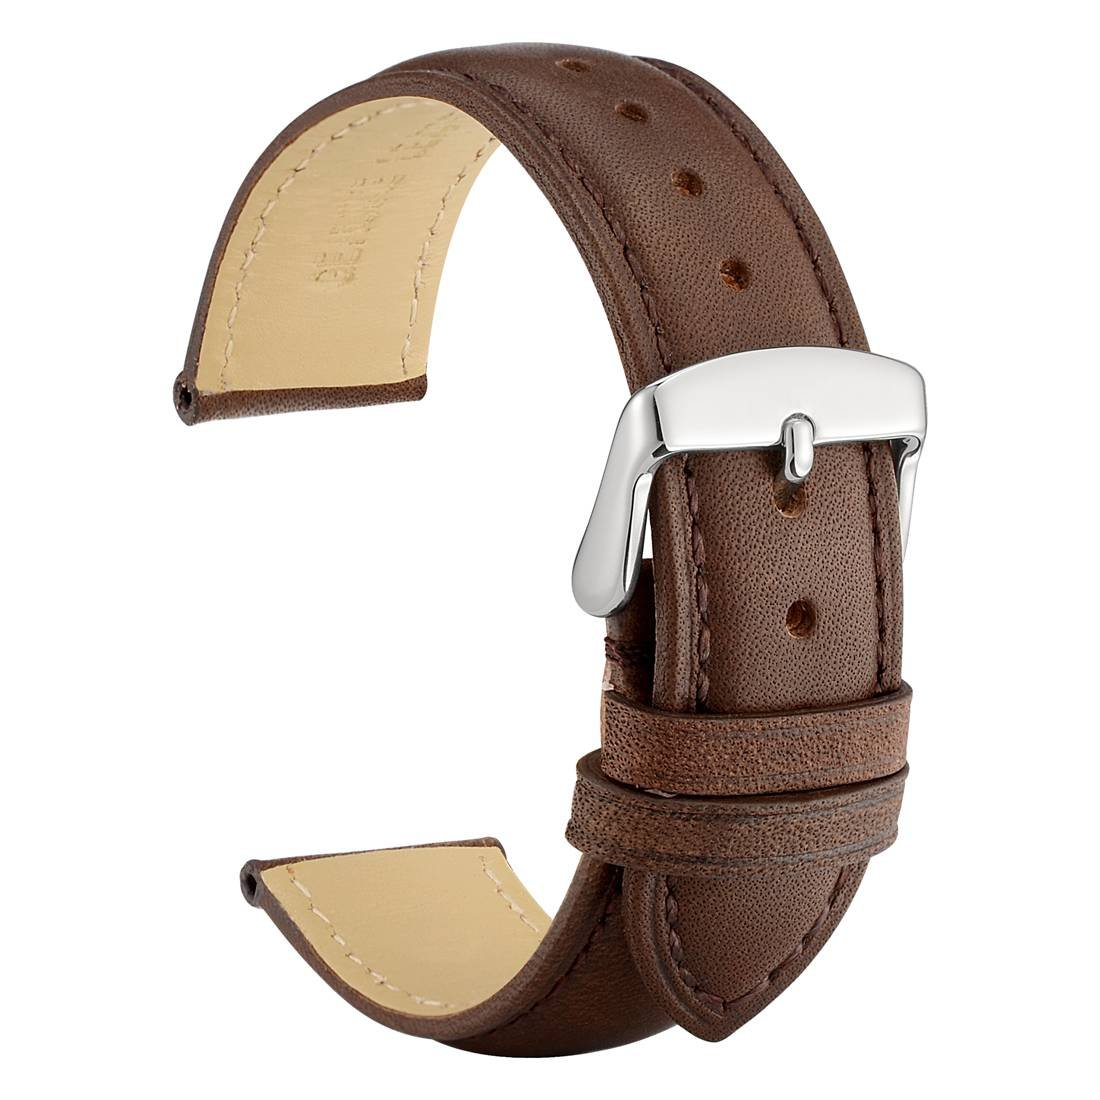 WOCCI 20mm Watch Band - Dark Brown Vintage Leather Watch Strap with Silver Buckle (Tone on Tone Stitching) by WOCCI